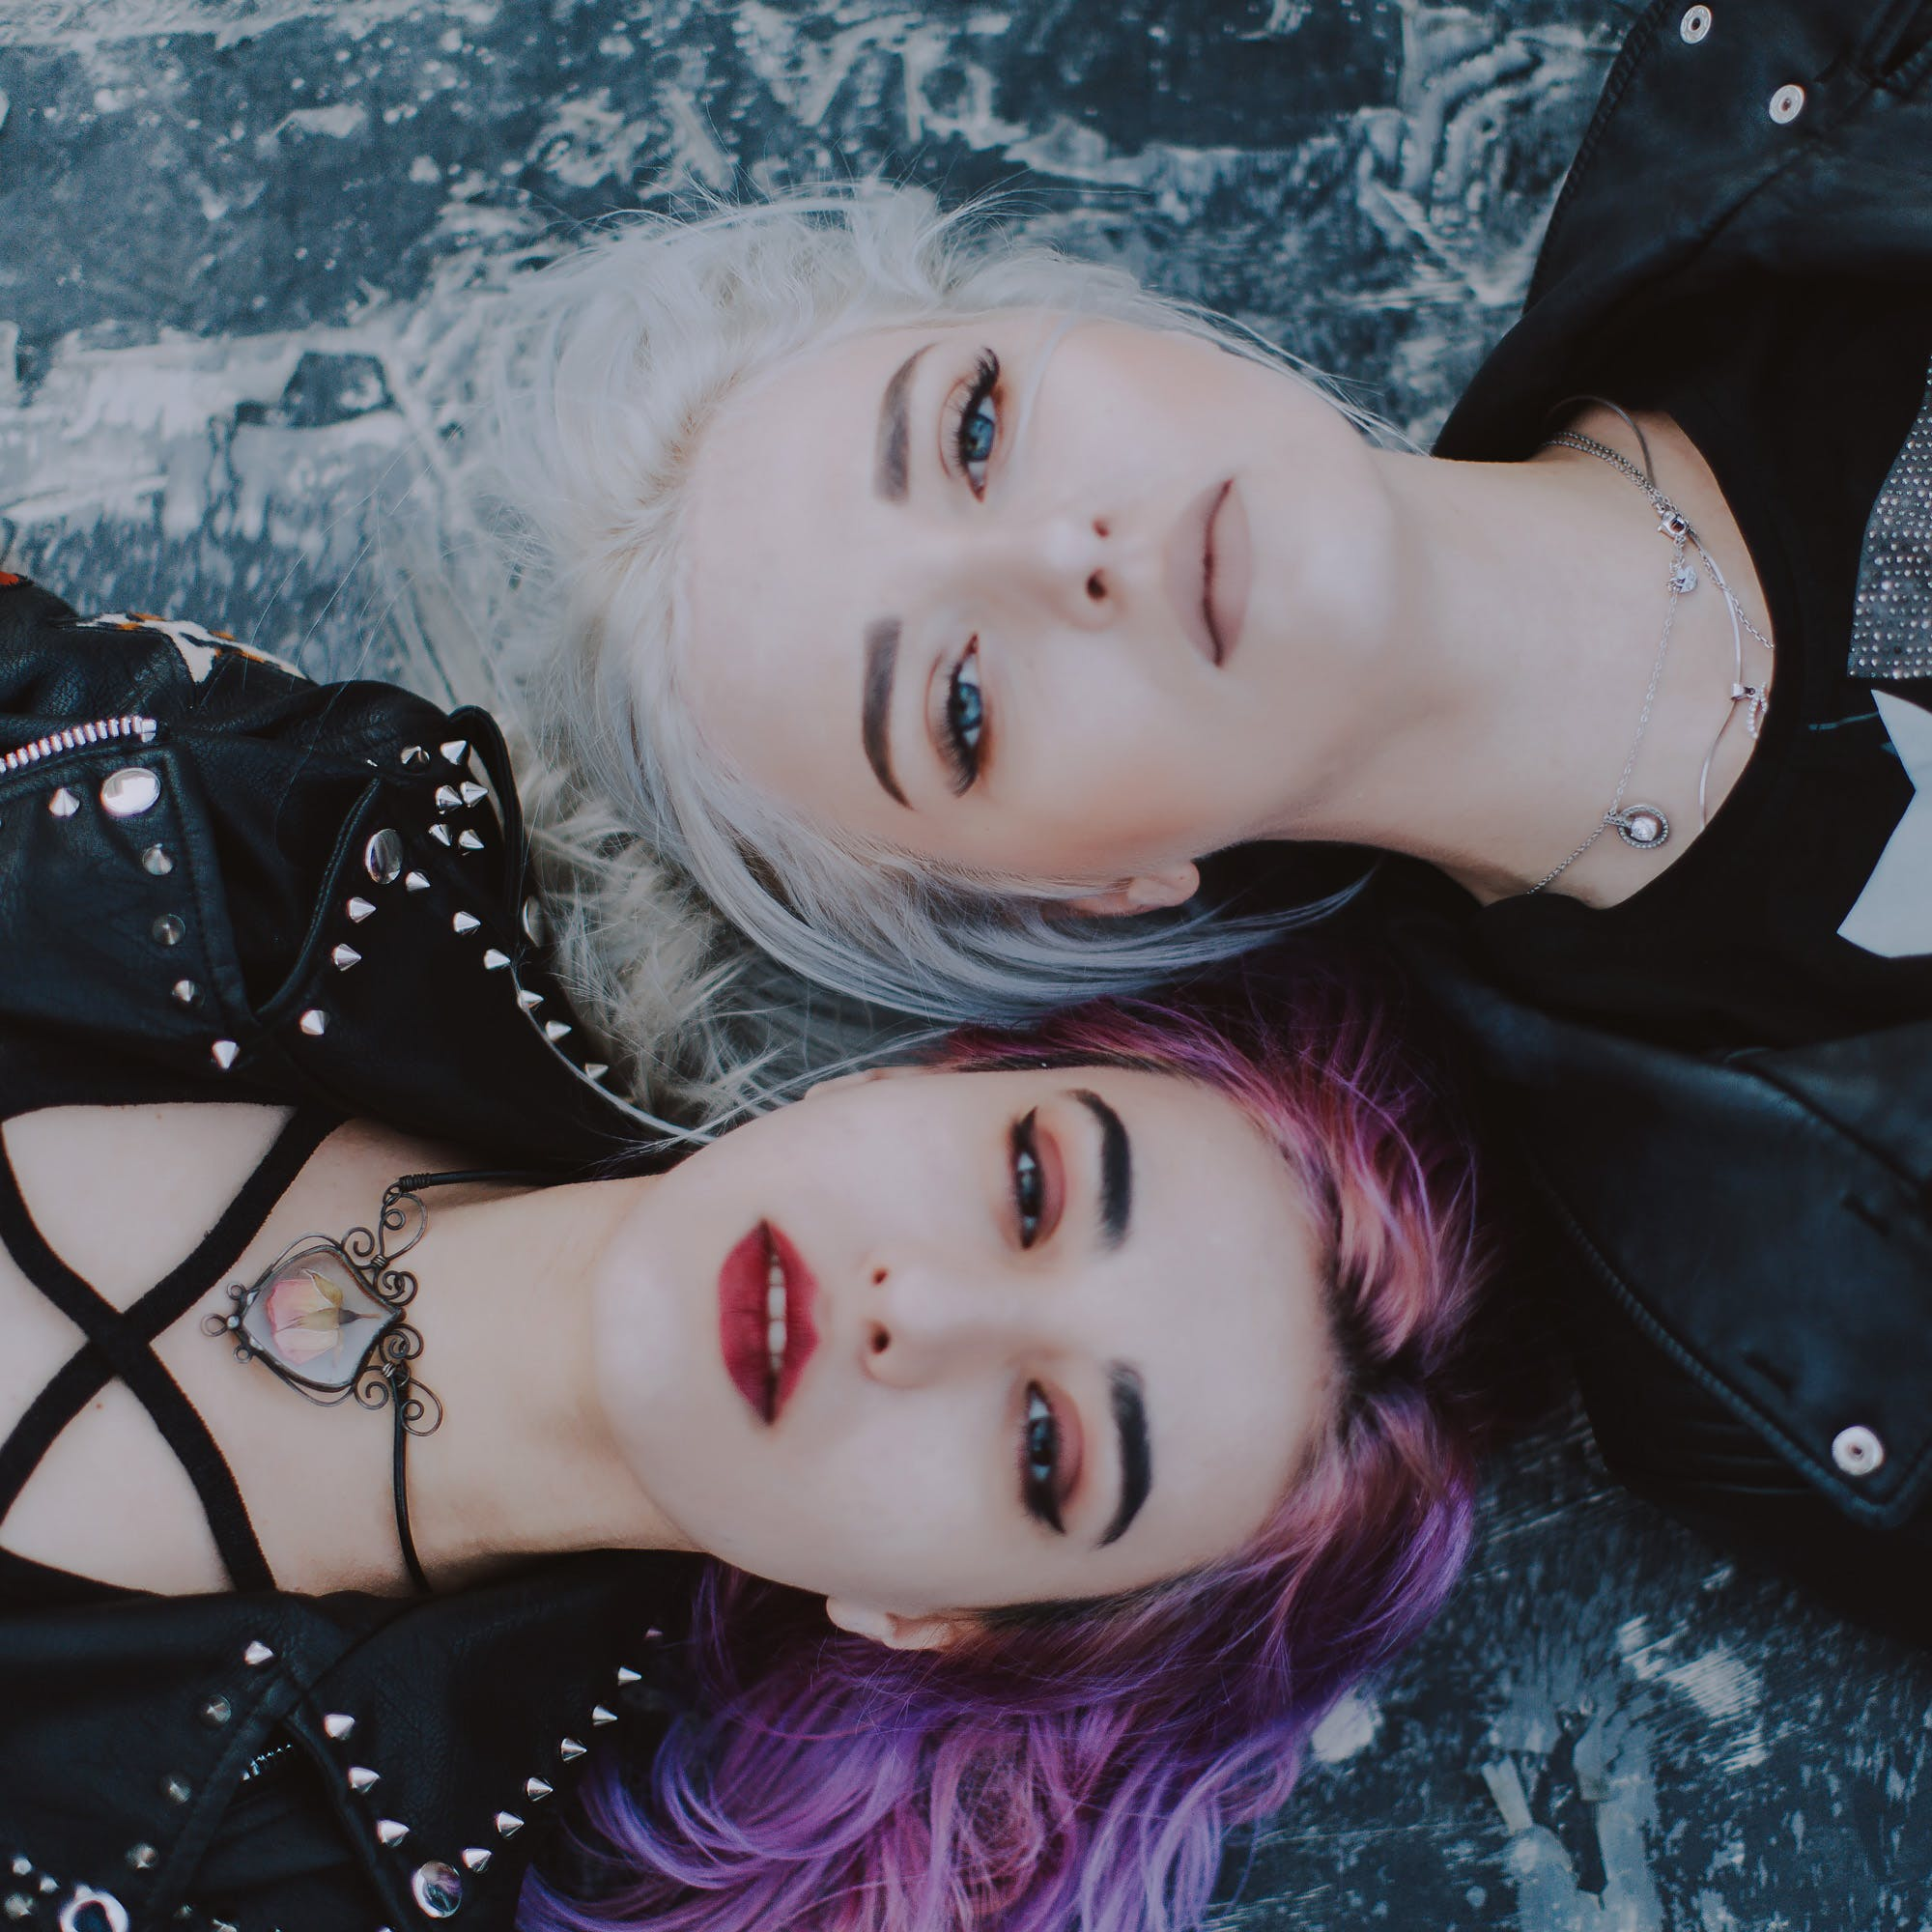 Focus Photo of Two Woman in Black Top